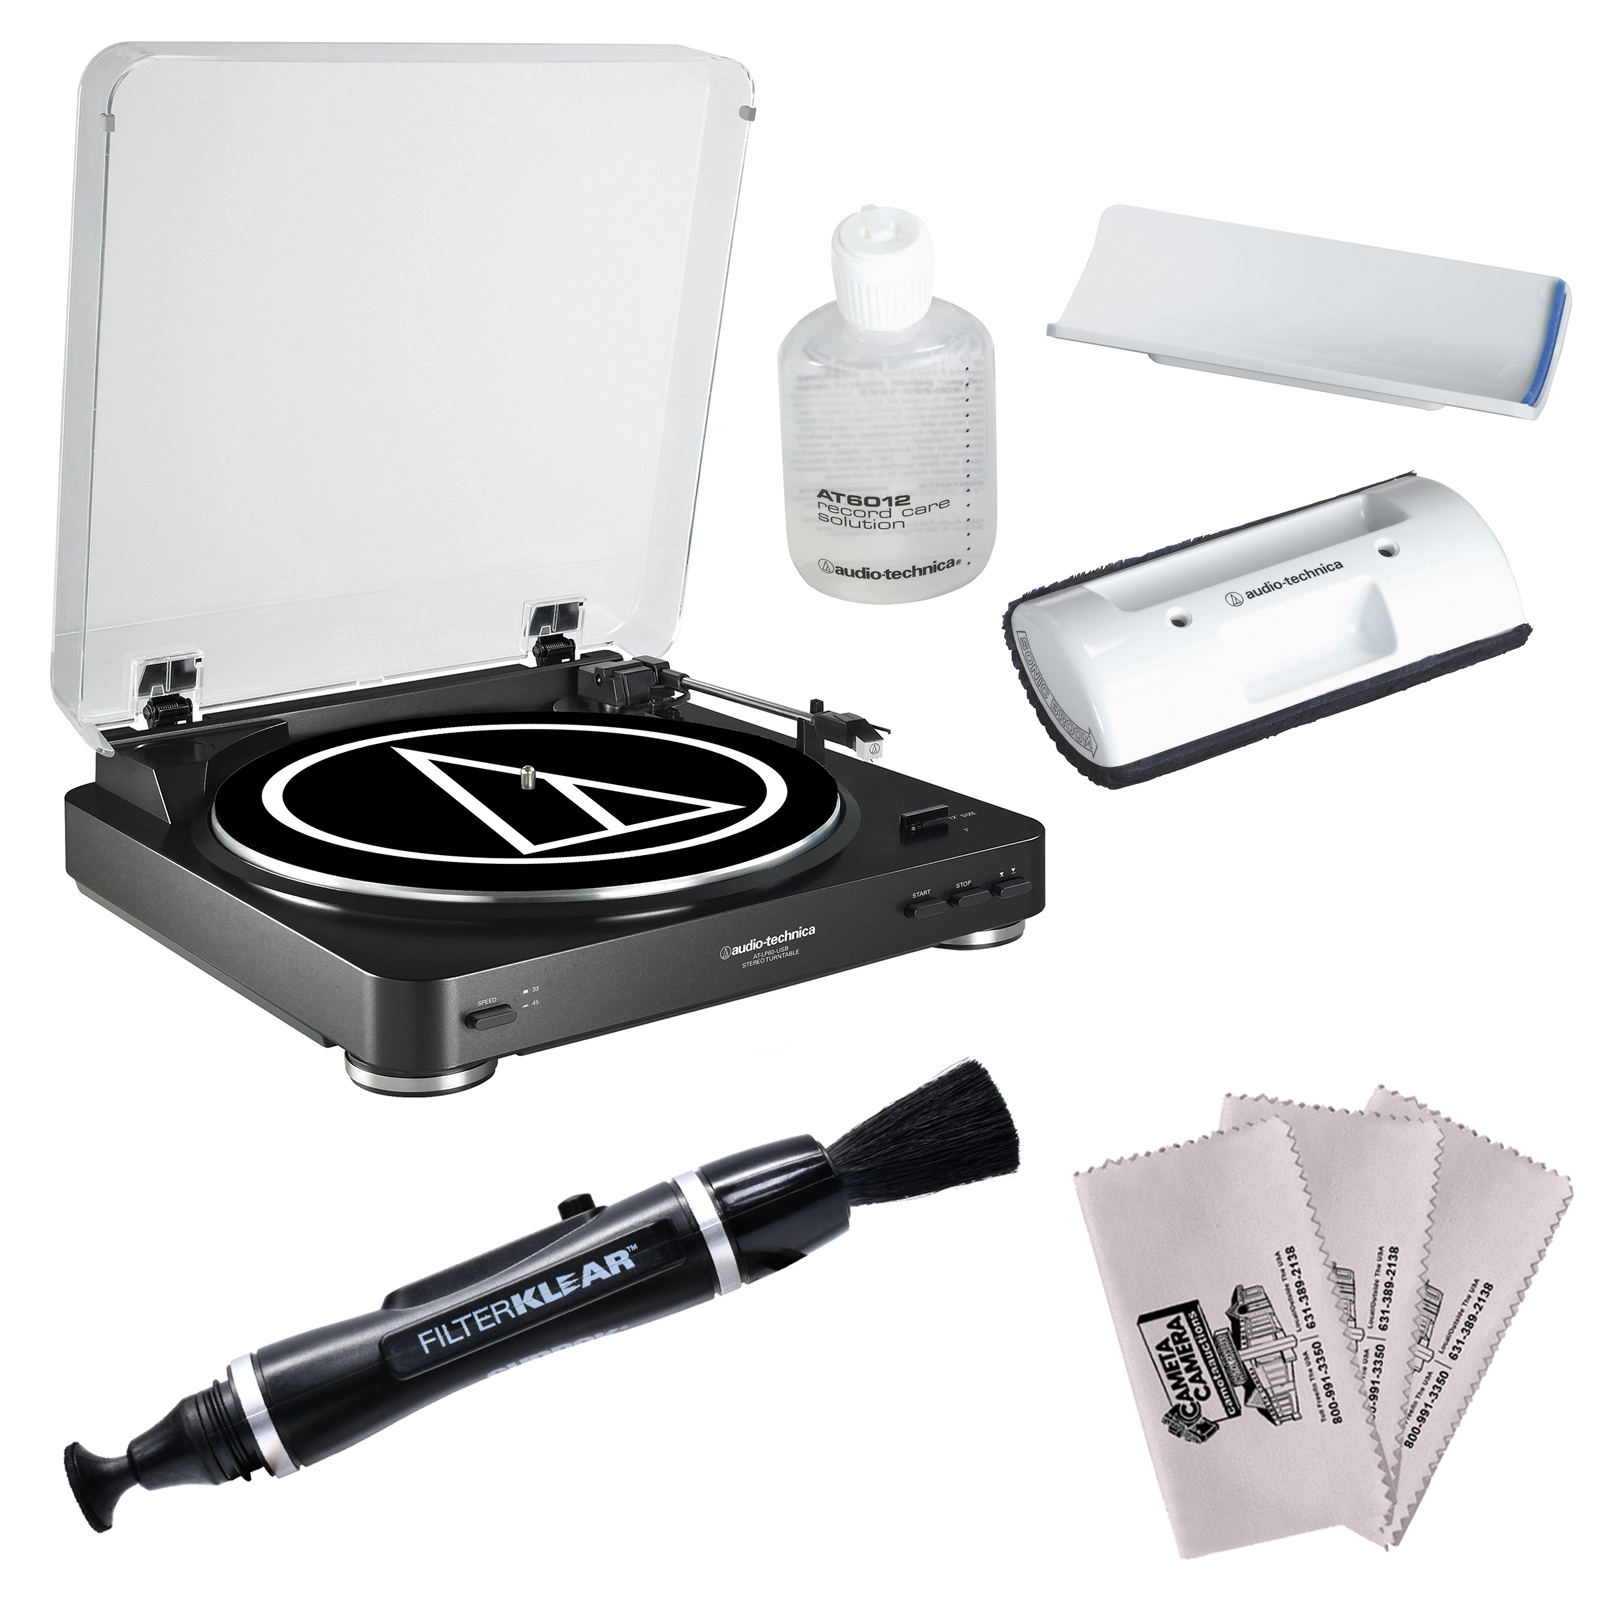 Audio-Technica AT-LP60-BT Bluetooth Automatic Belt-Drive Stereo Turntable (Black) with Record Care + Cleaning Kit